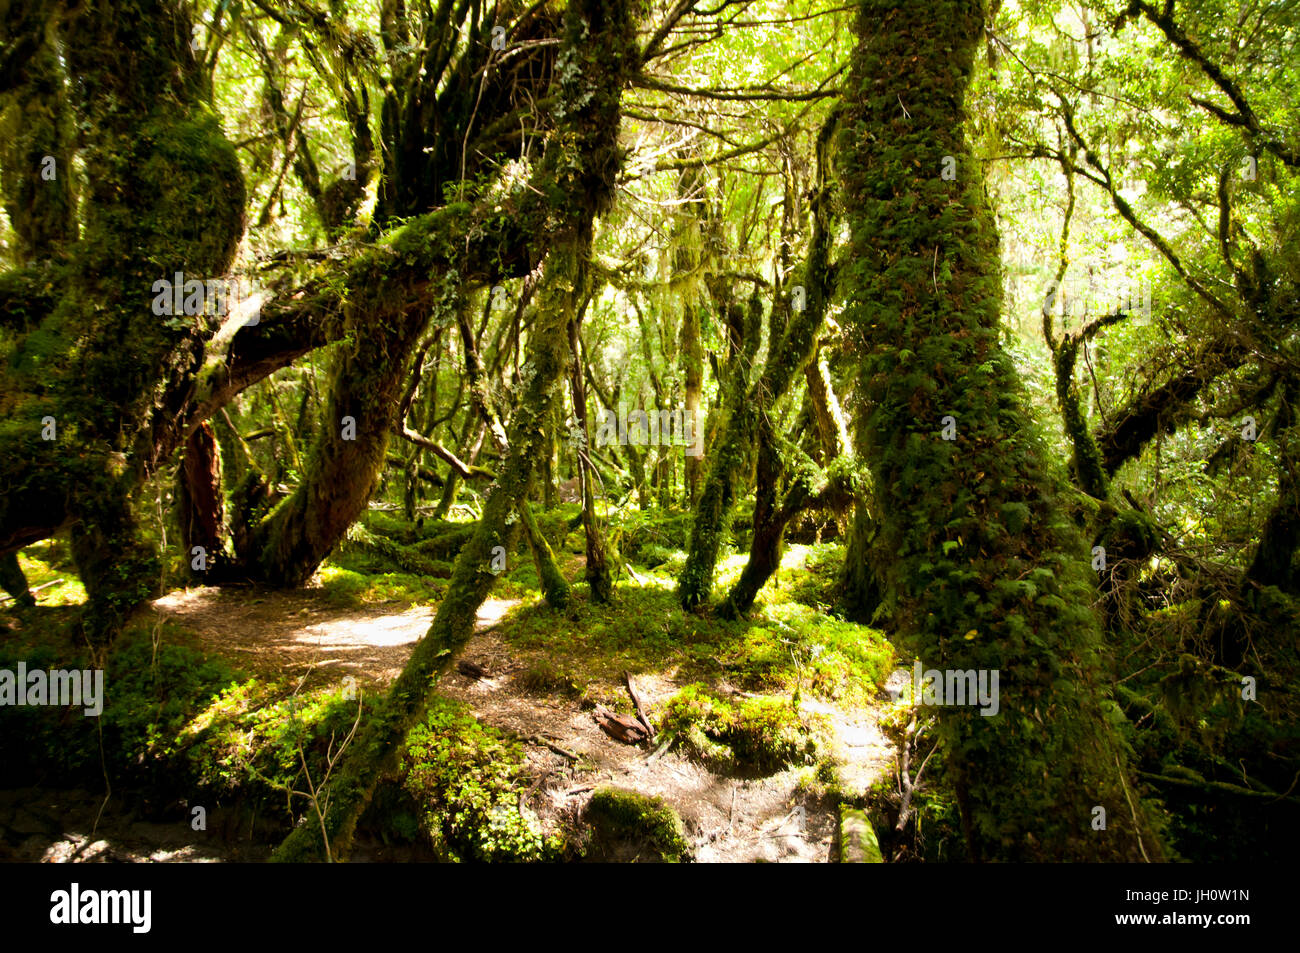 Enchanted Forest - Queulat National Park - Chile - Stock Image